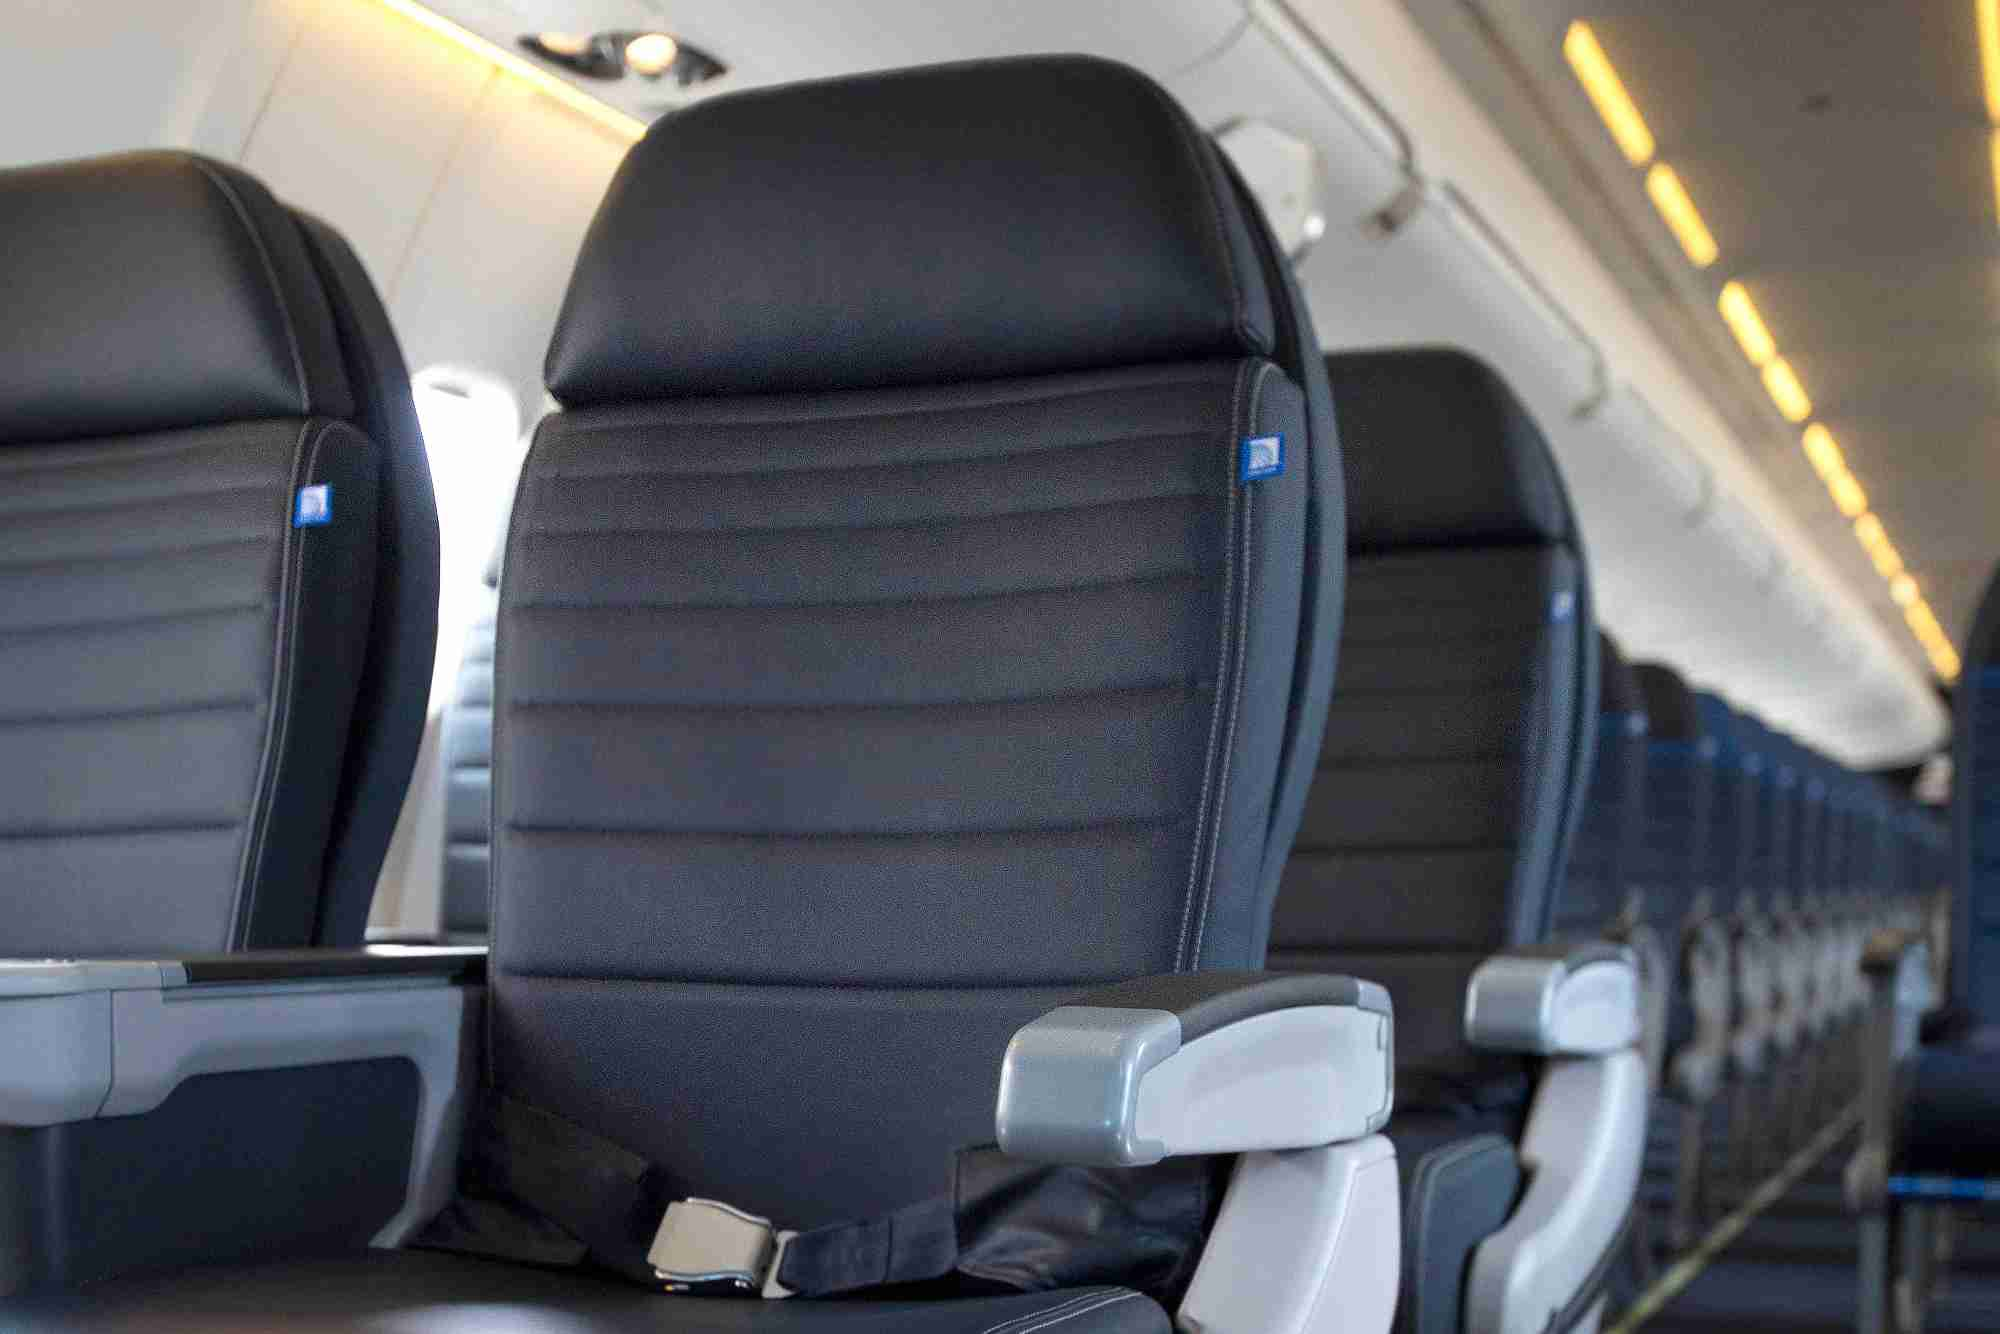 The first class cabin on United